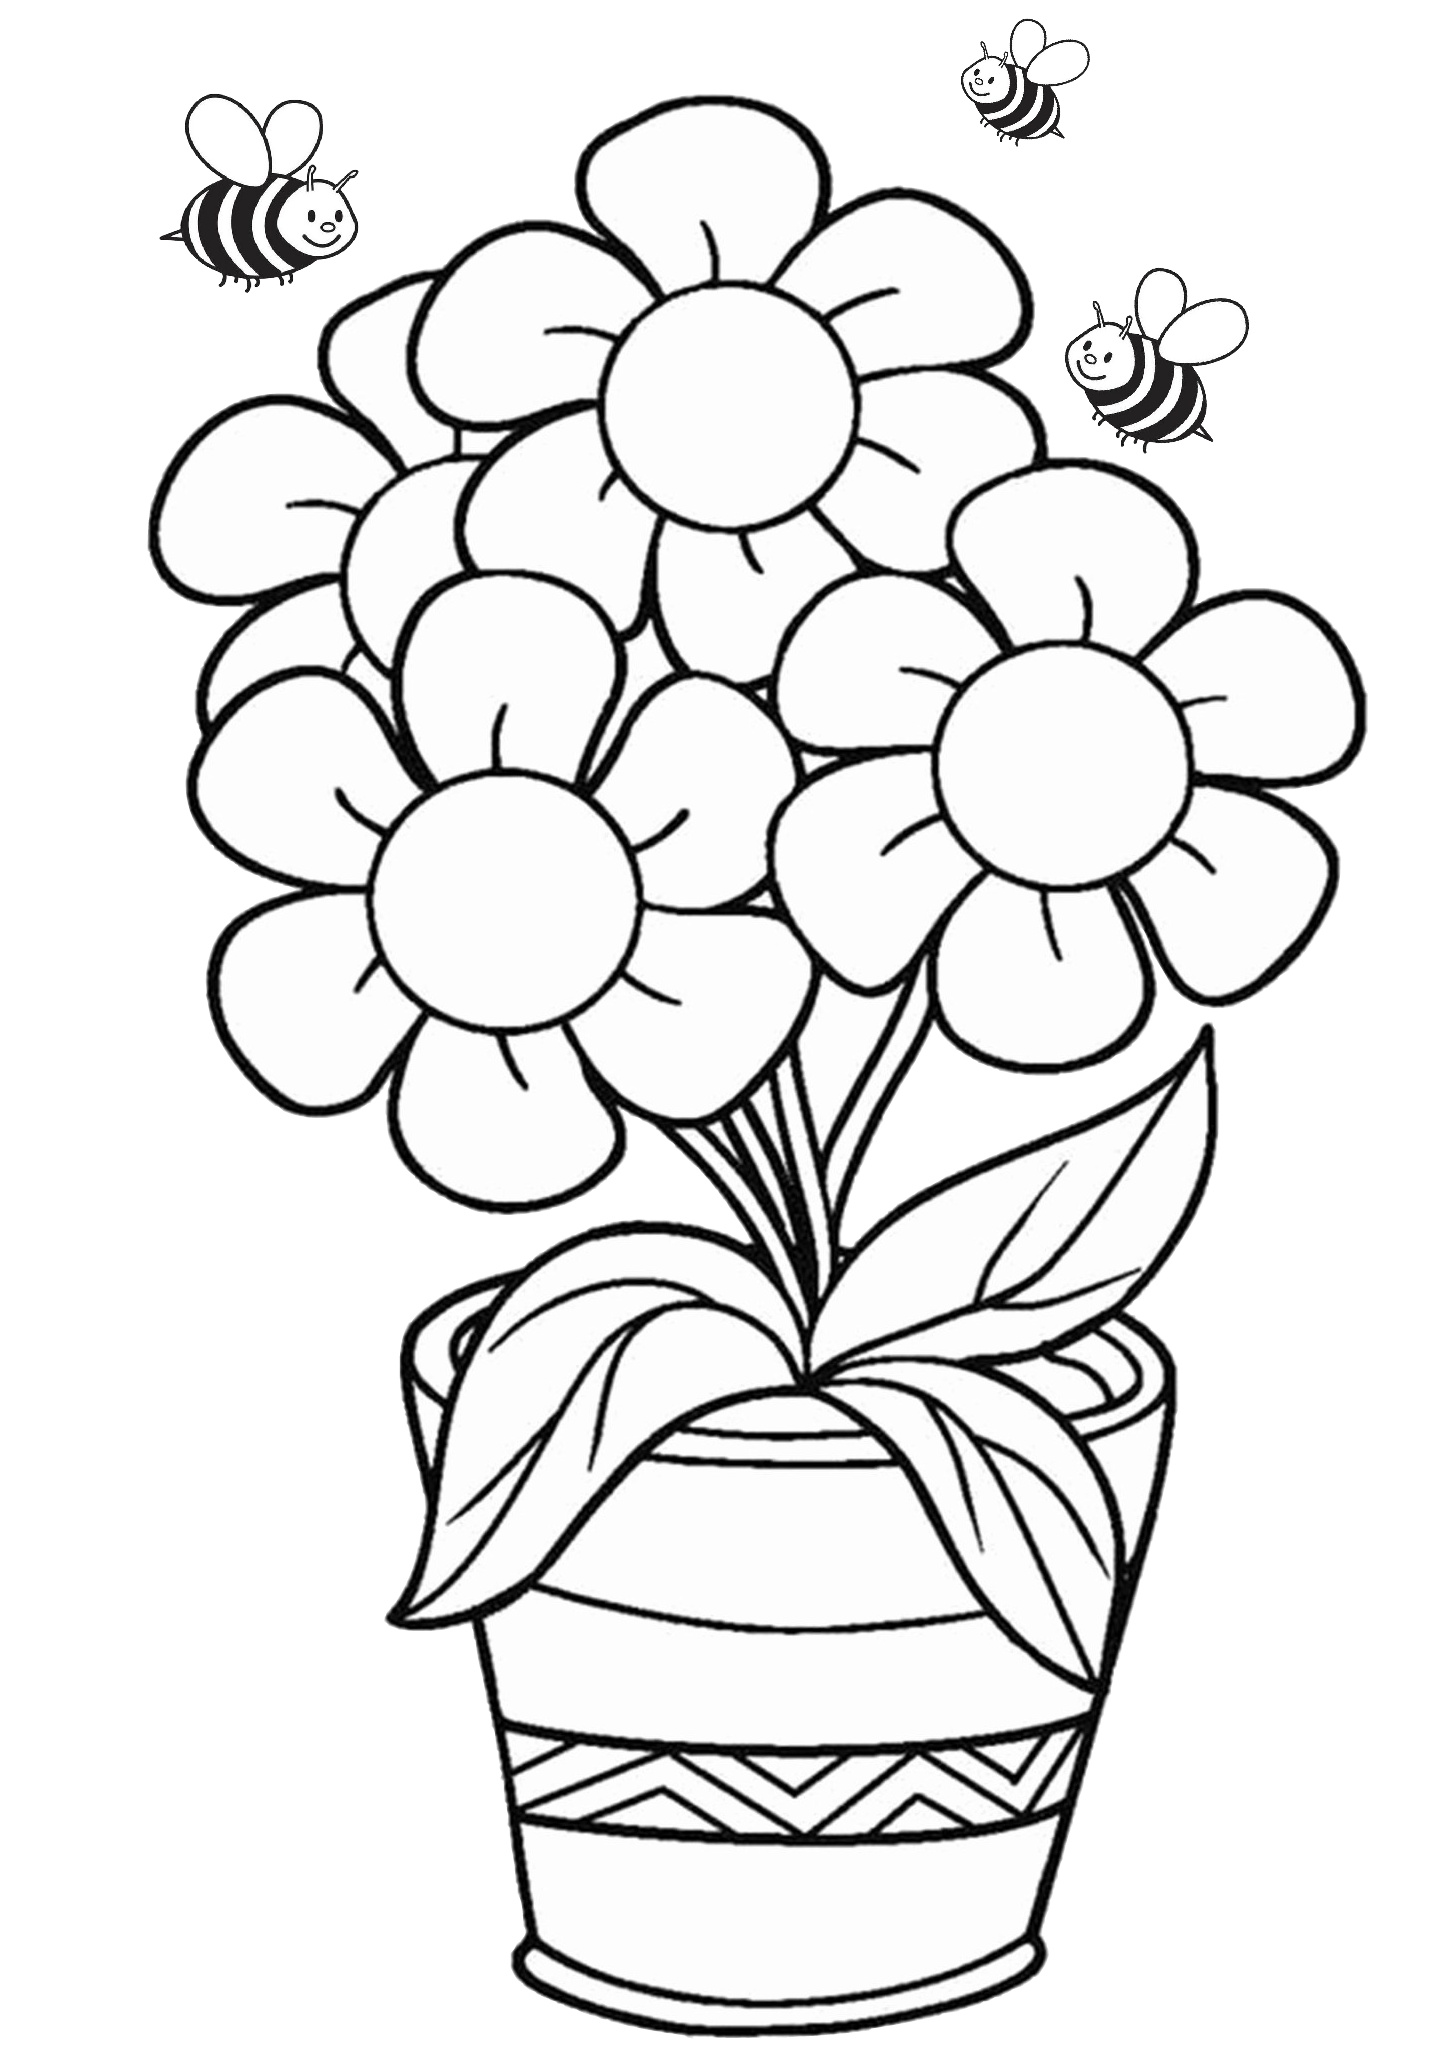 coloring page pdf preschool coloring pages pdf at getcoloringscom free coloring pdf page